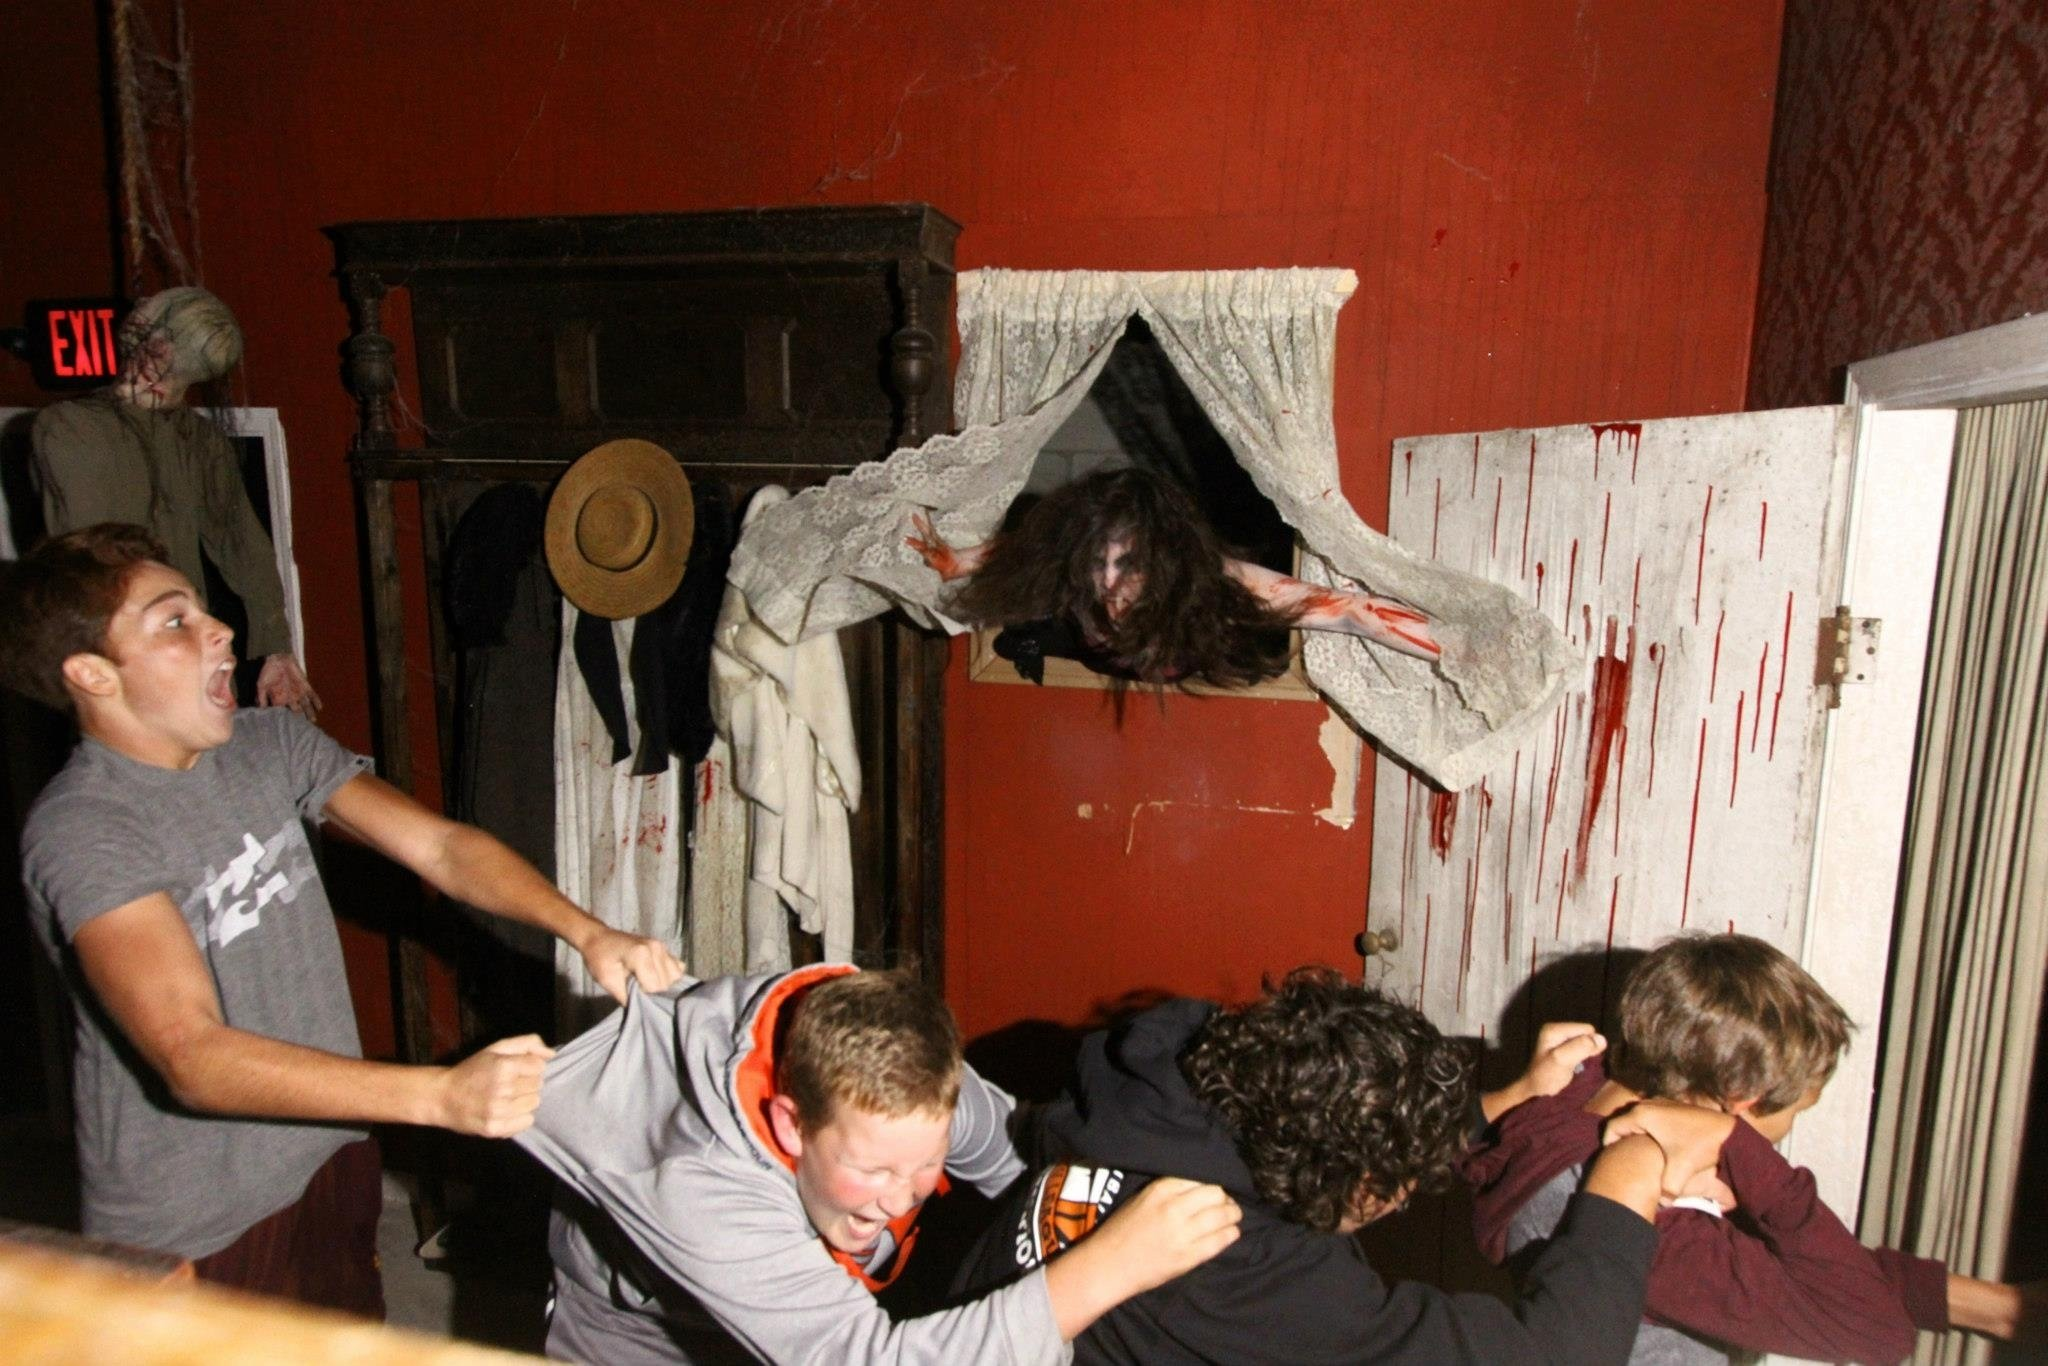 10 Stunning Scary Haunted House Room Ideas